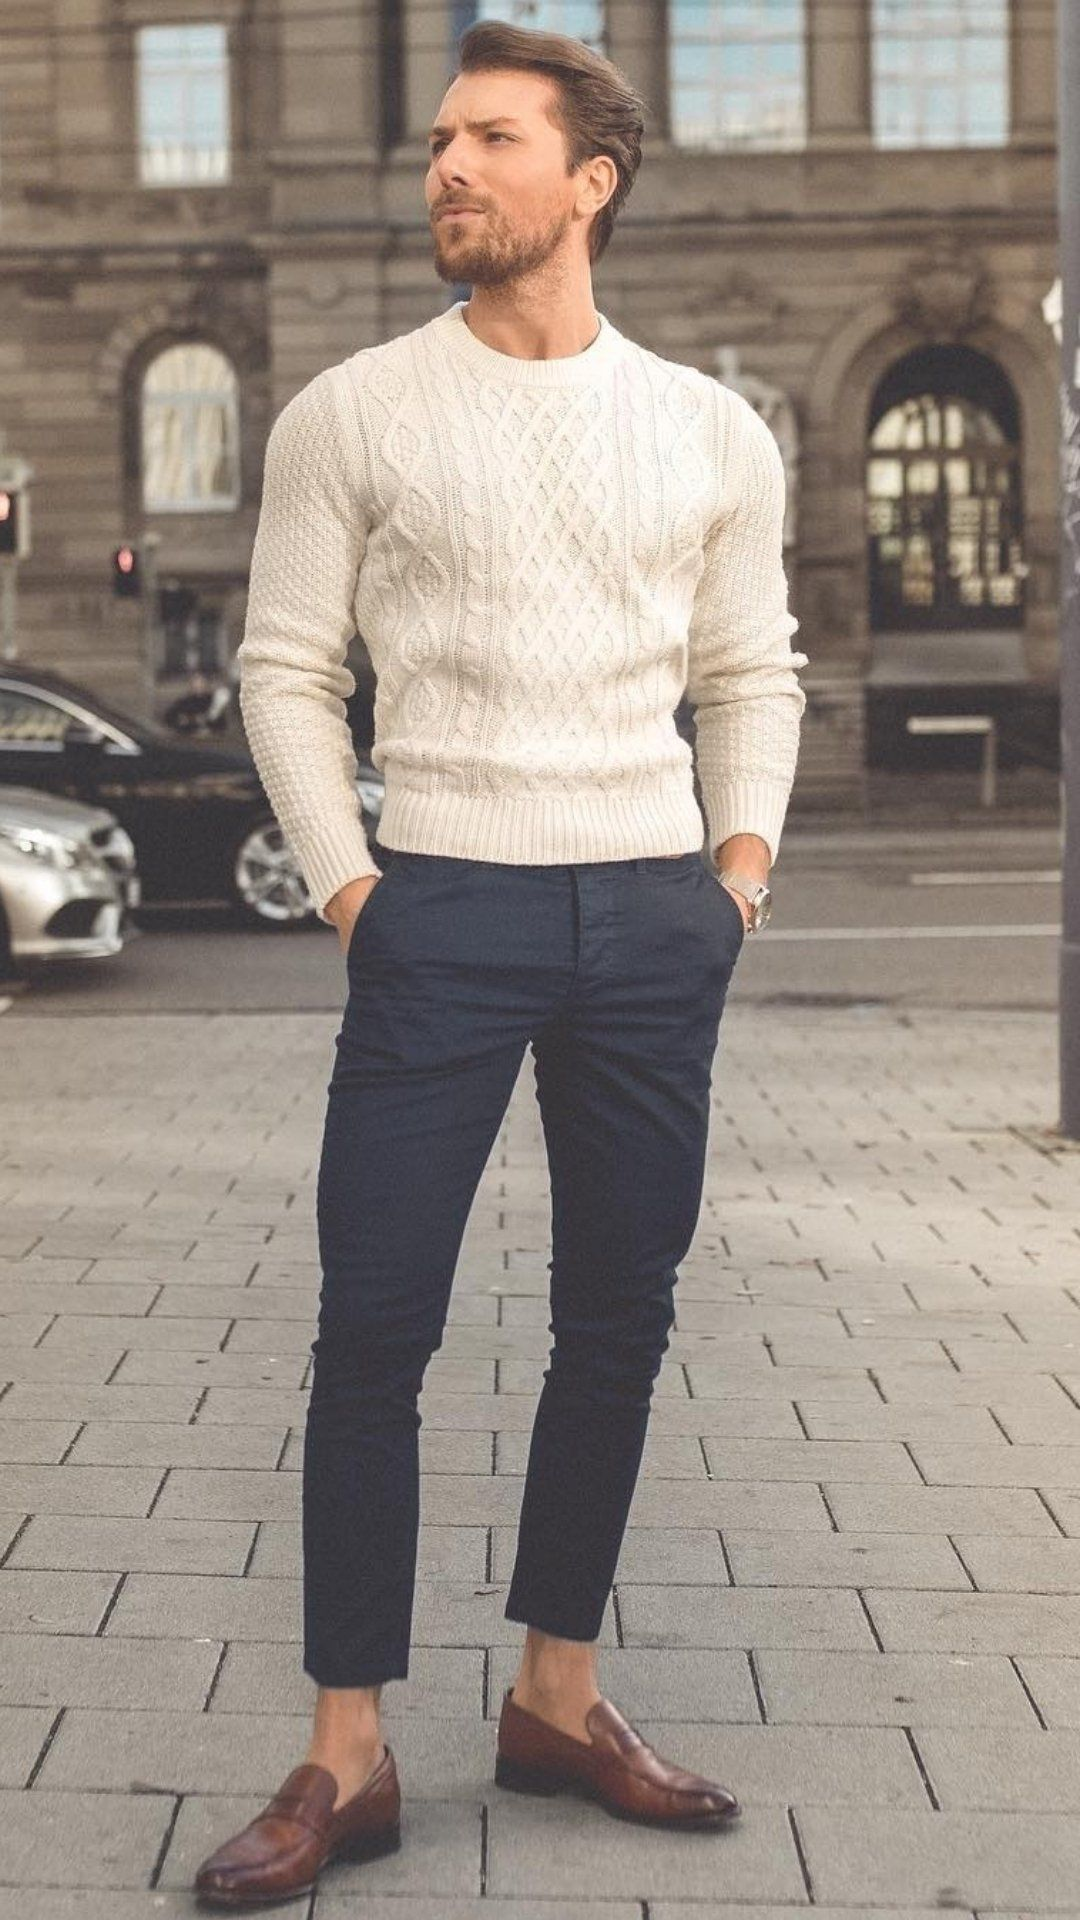 5 Cool Sweater Outfits For Men #men'sfashion